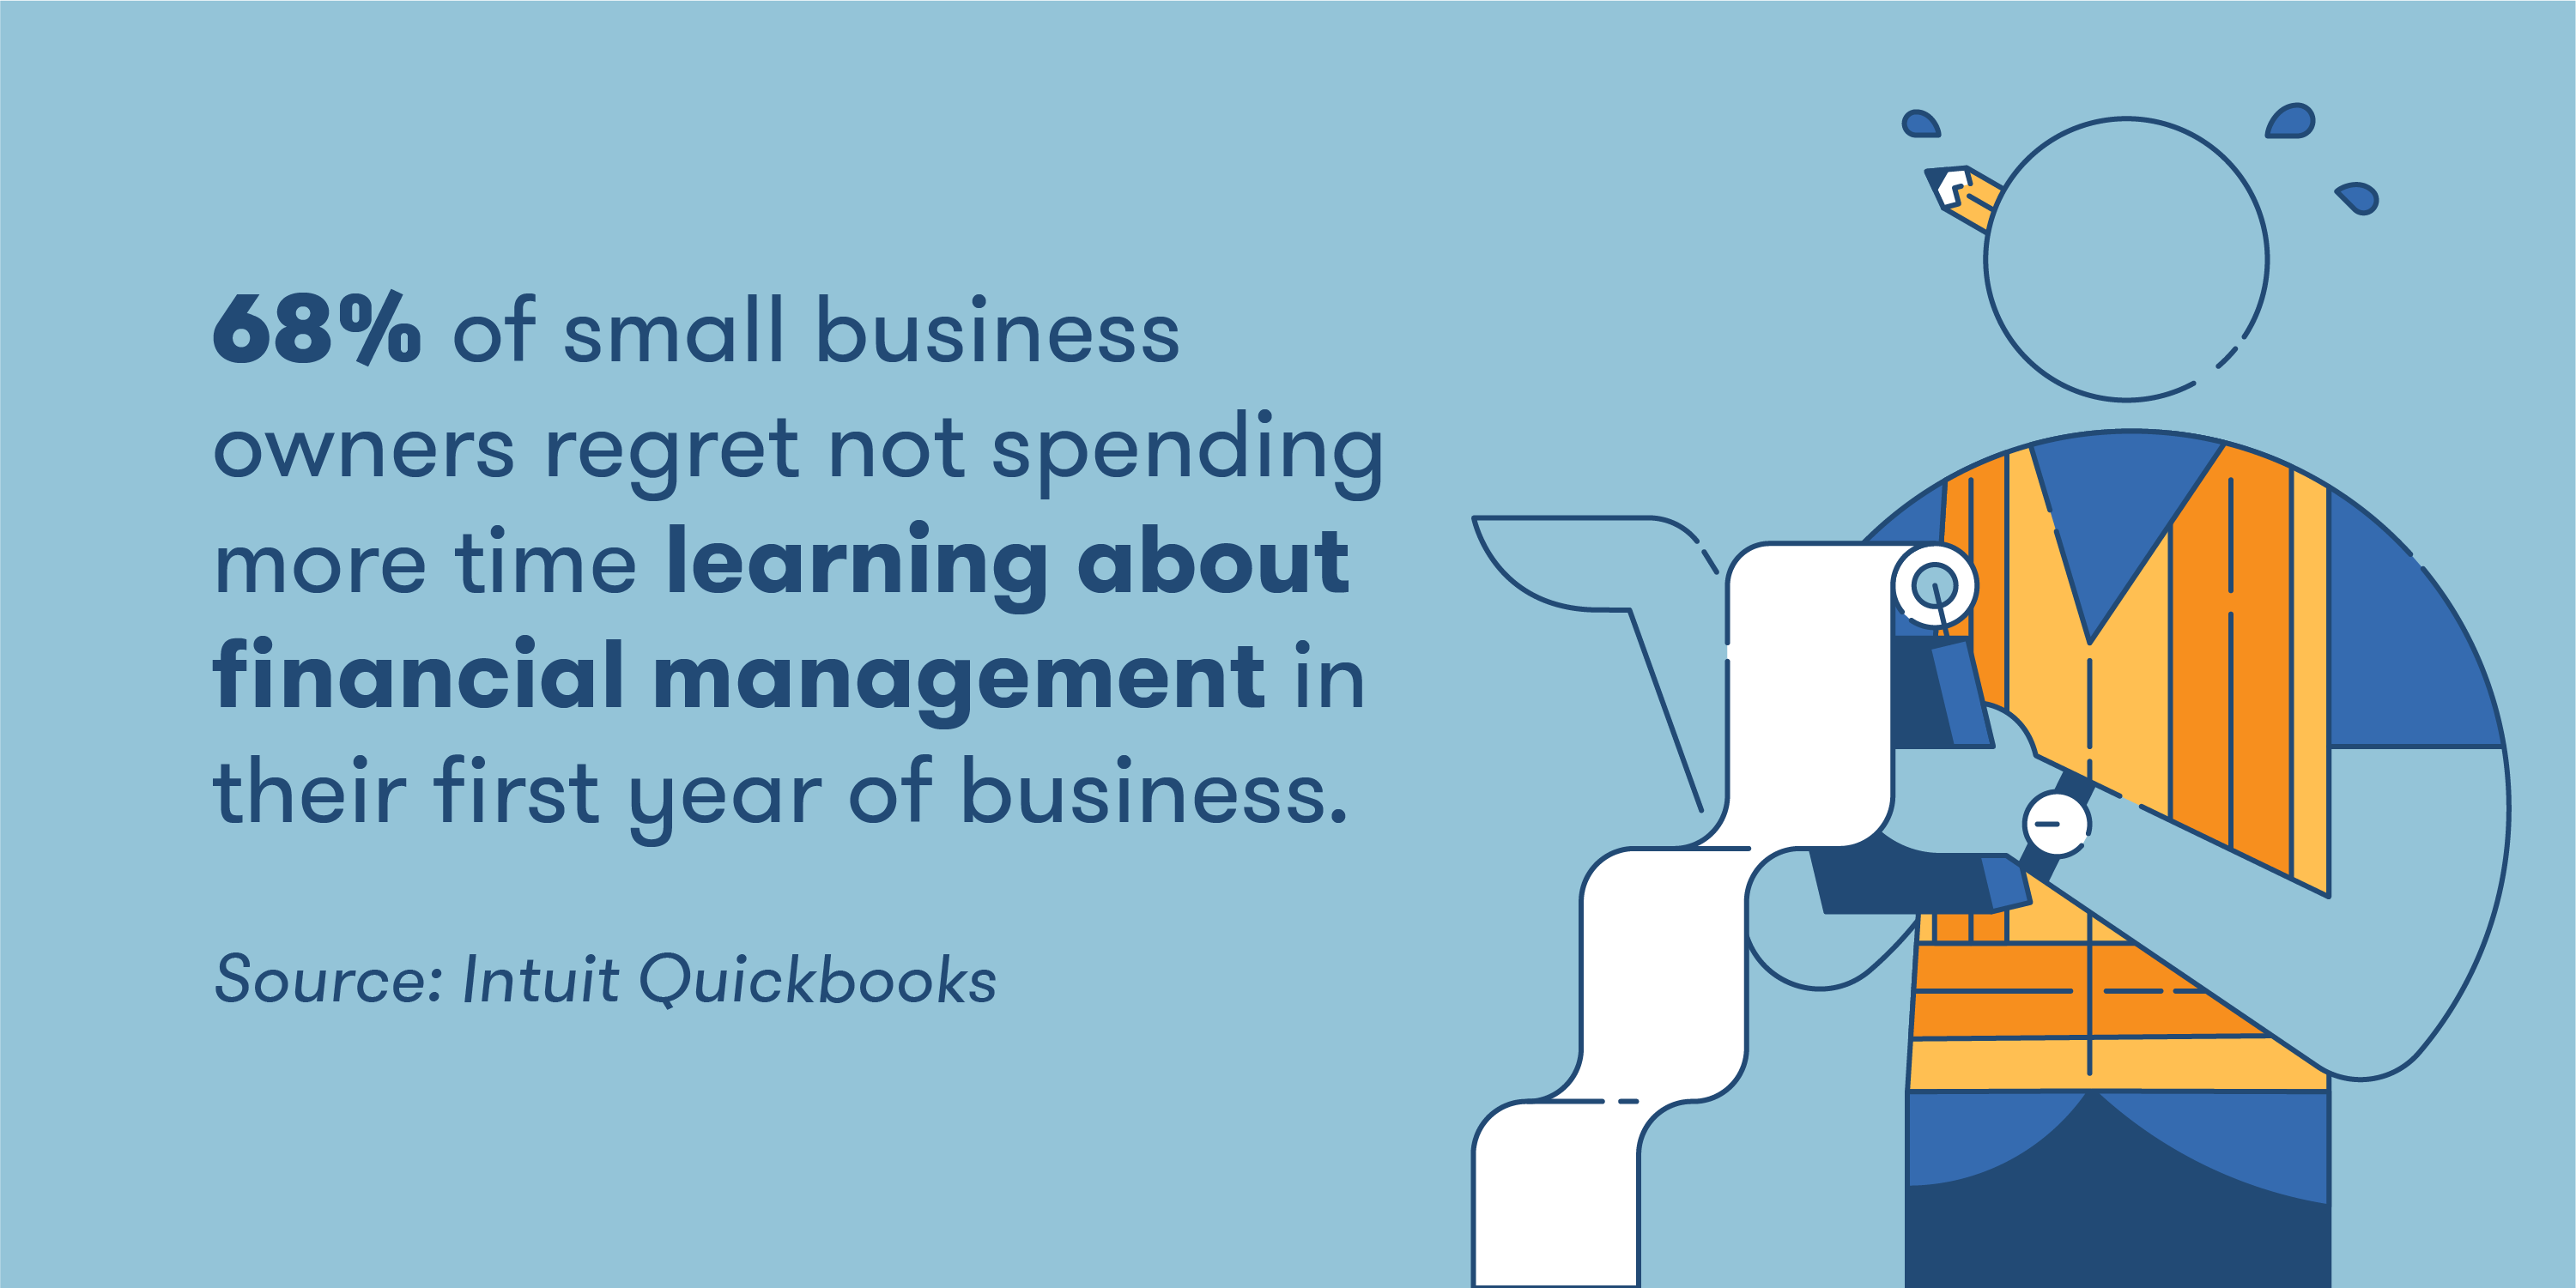 65% of small business owners regret not spending more time learning about financial management in their first year of business